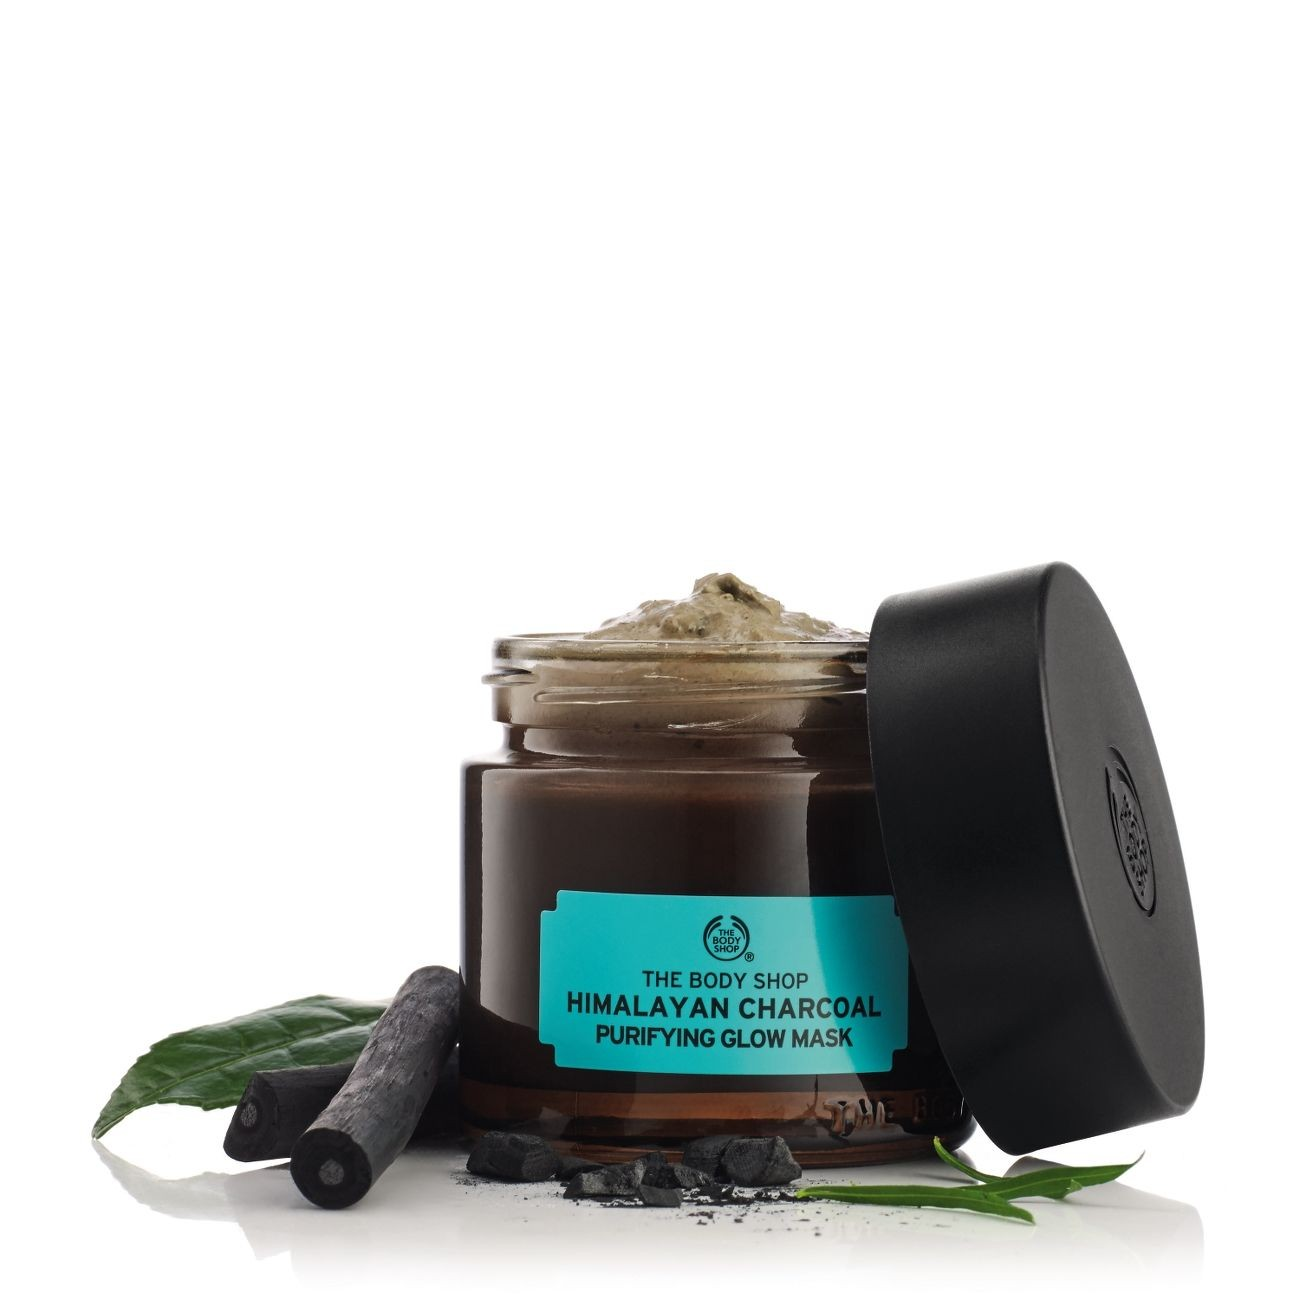 Himalayan Charcoal Purifying Glow Mask 75gr - The Body Shop